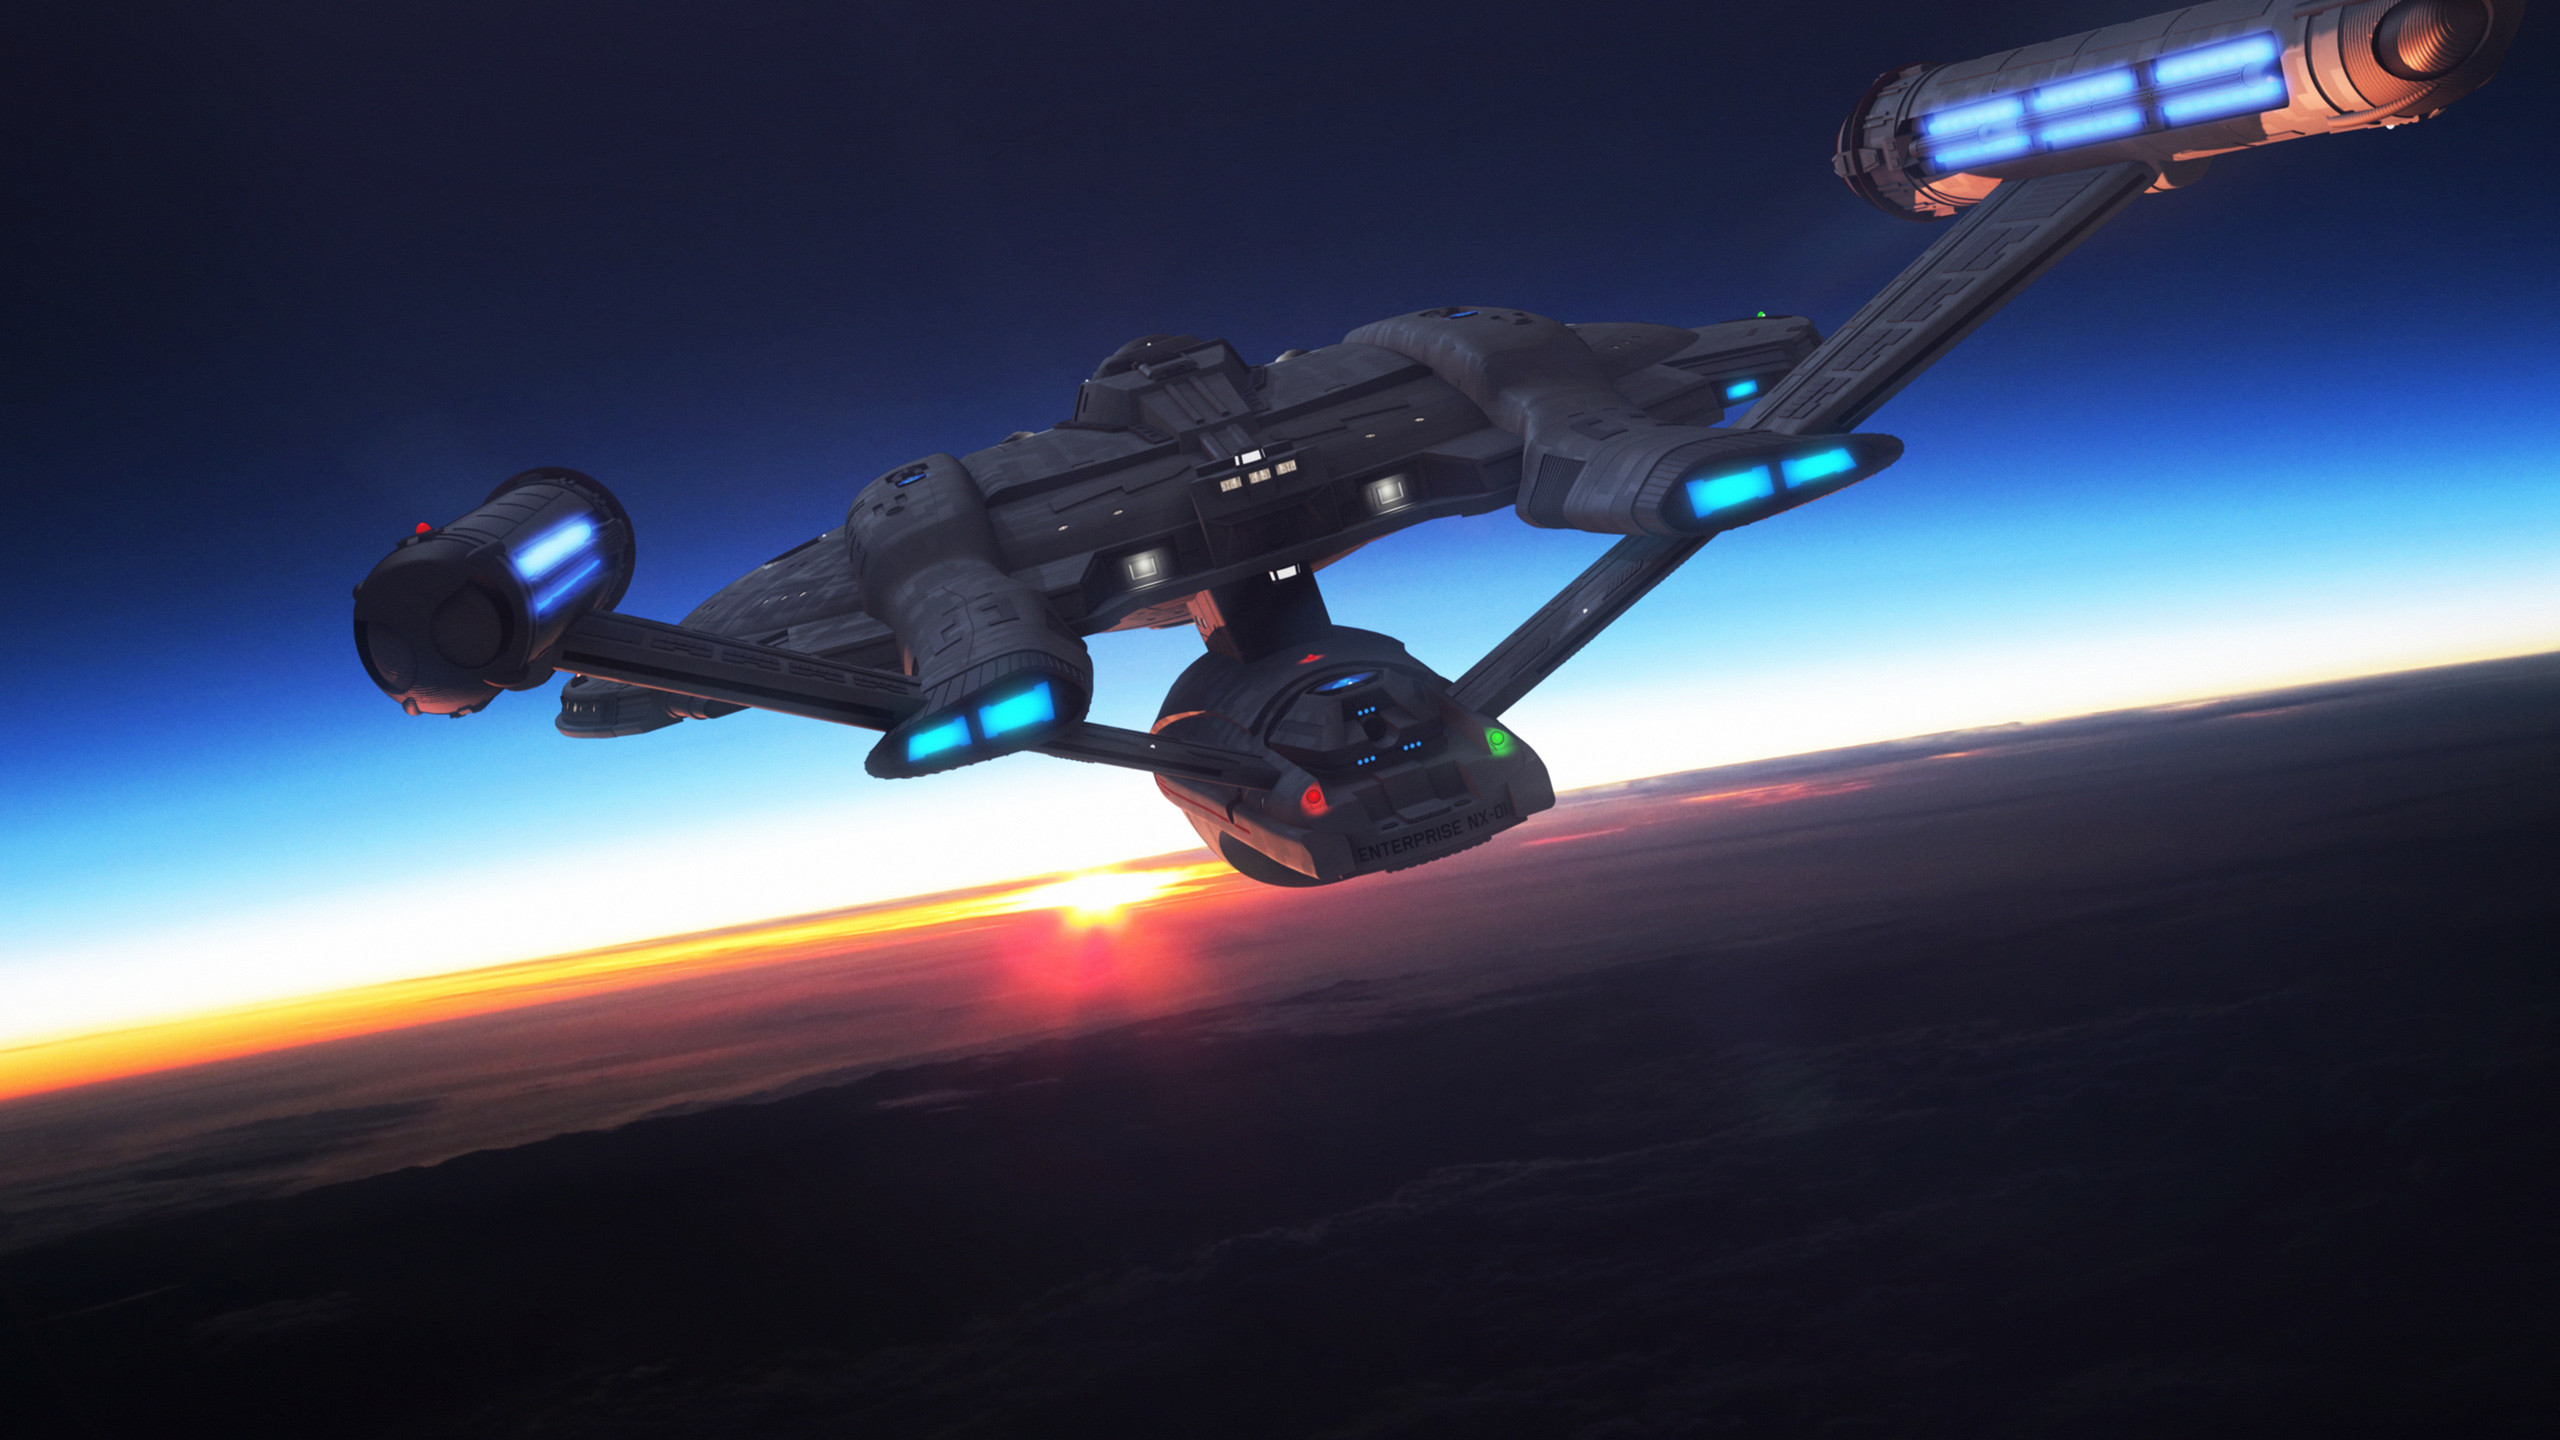 2560x1440 Star Trek USS Enterprise NX01. Free Star Trek computer desktop wallpaper,  images, pictures